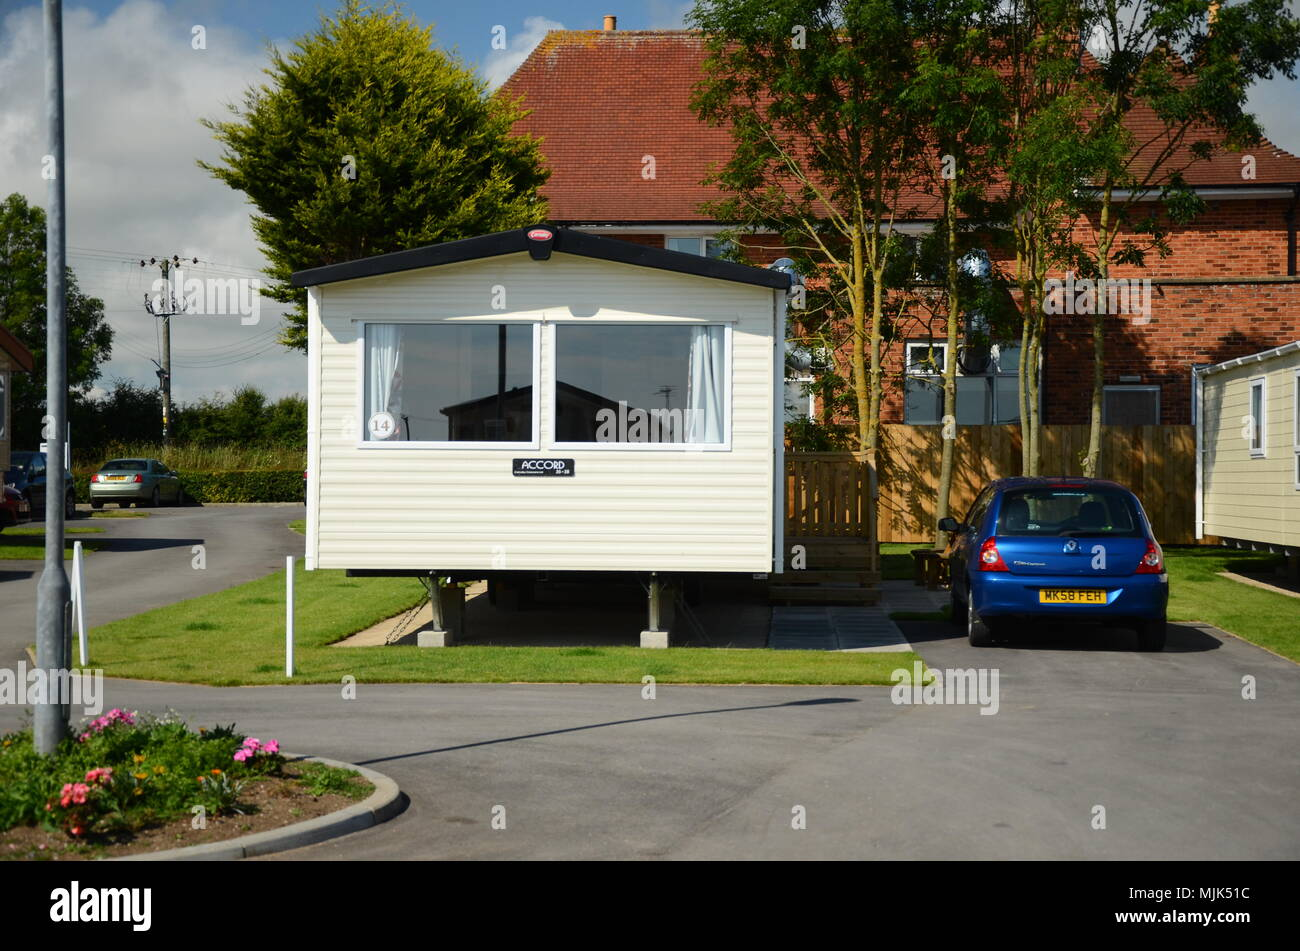 permanent caravan sites for Gypsy and Traveller communities Stock Photo